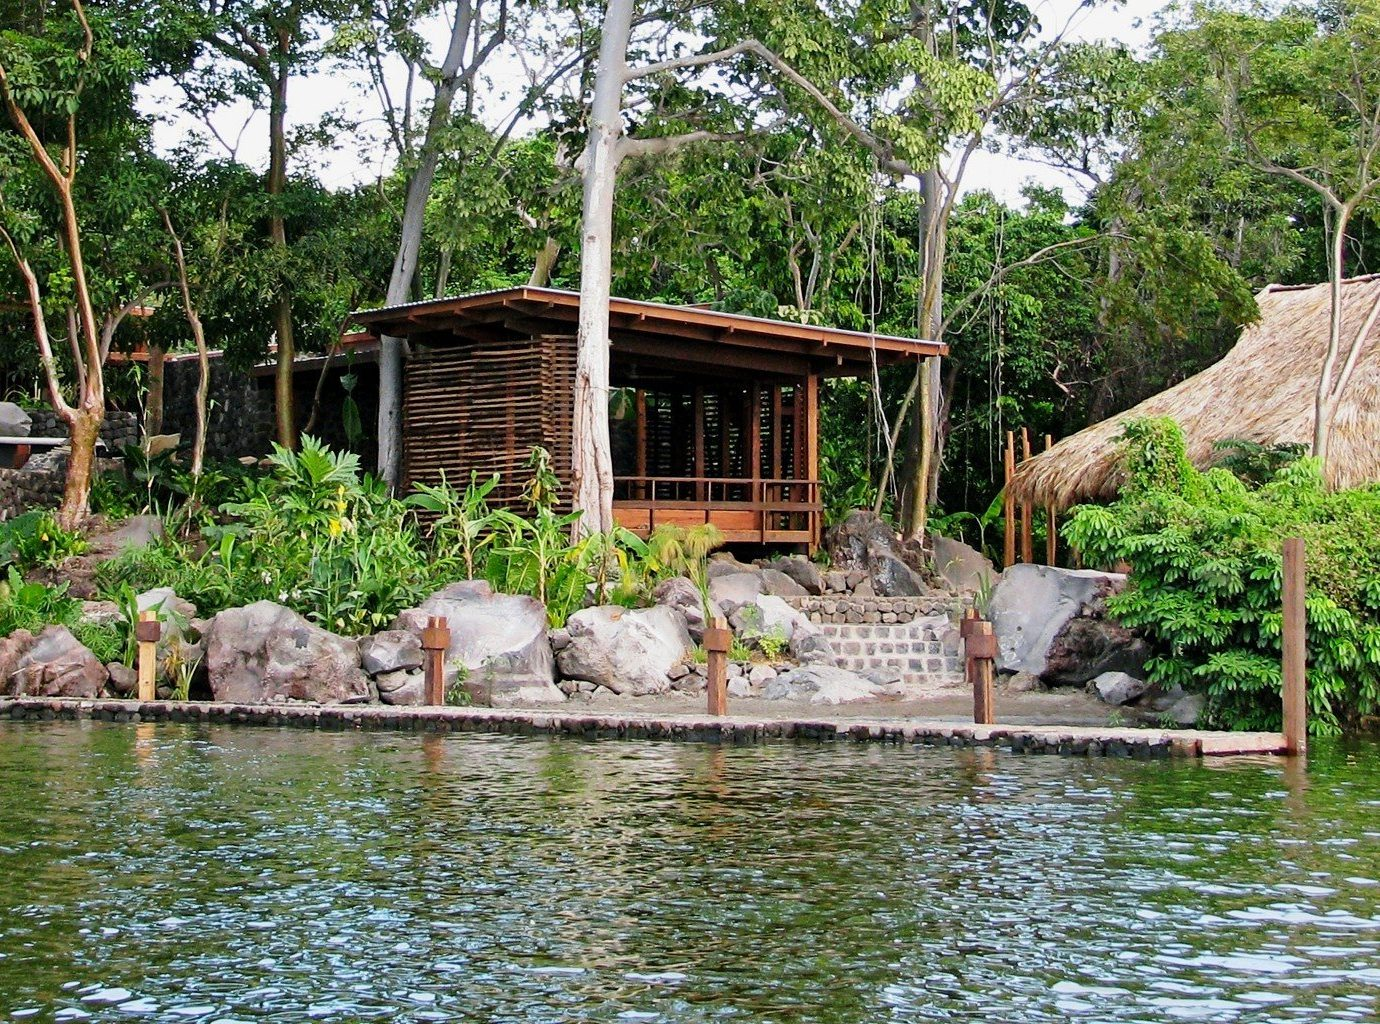 Hotels Outdoors + Adventure tree outdoor Resort rock pond Jungle Nature zoo backyard Garden Village swimming pool stone several